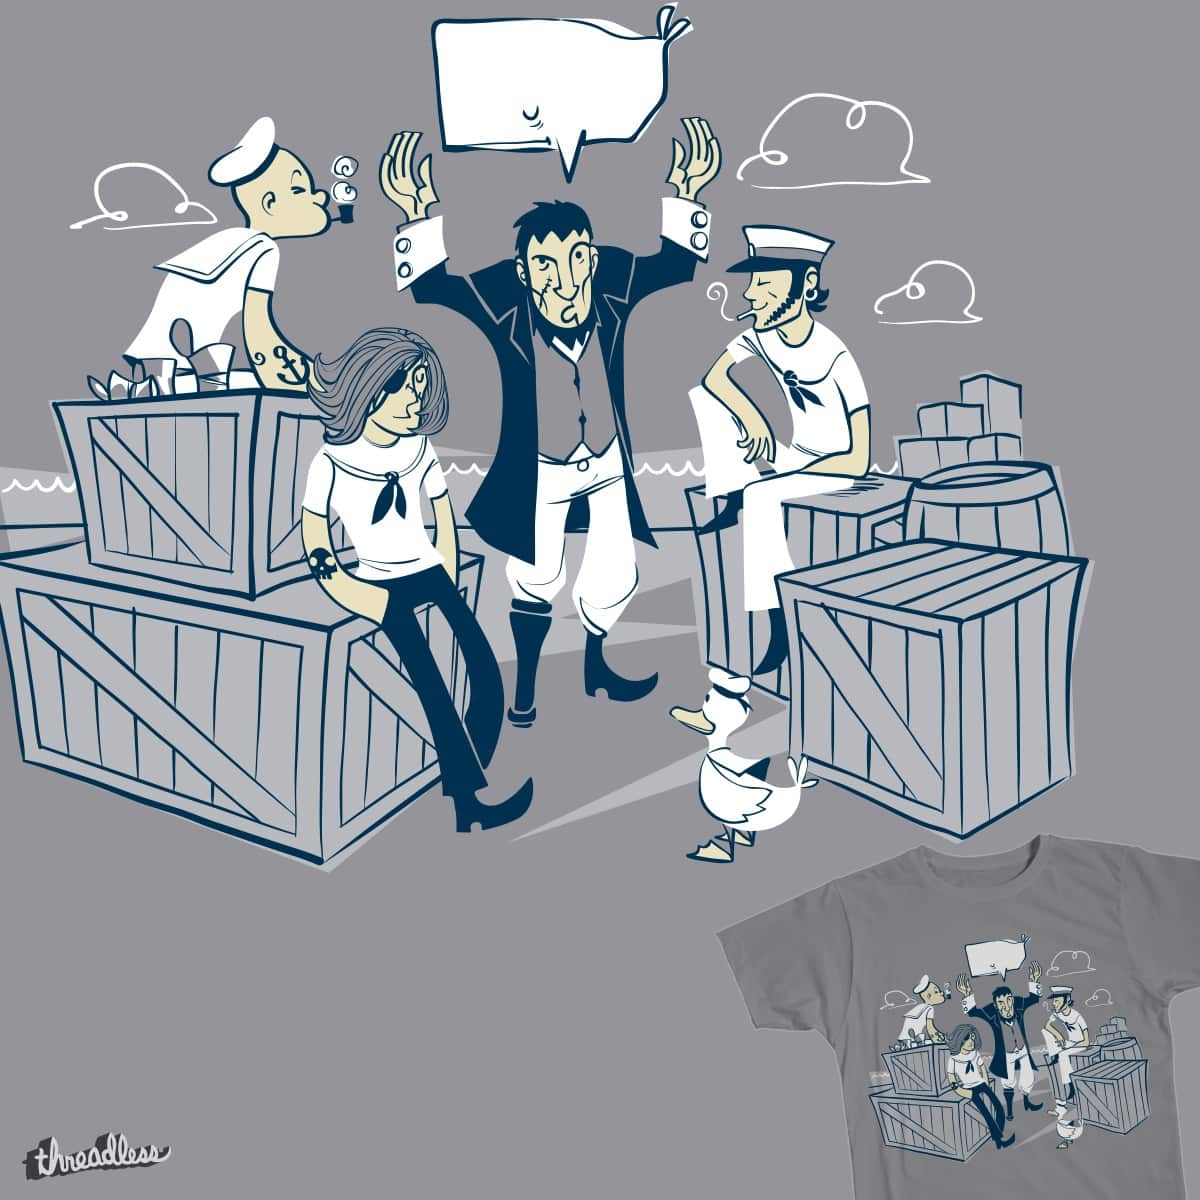 sailors stories (vintage) by spike00 on Threadless